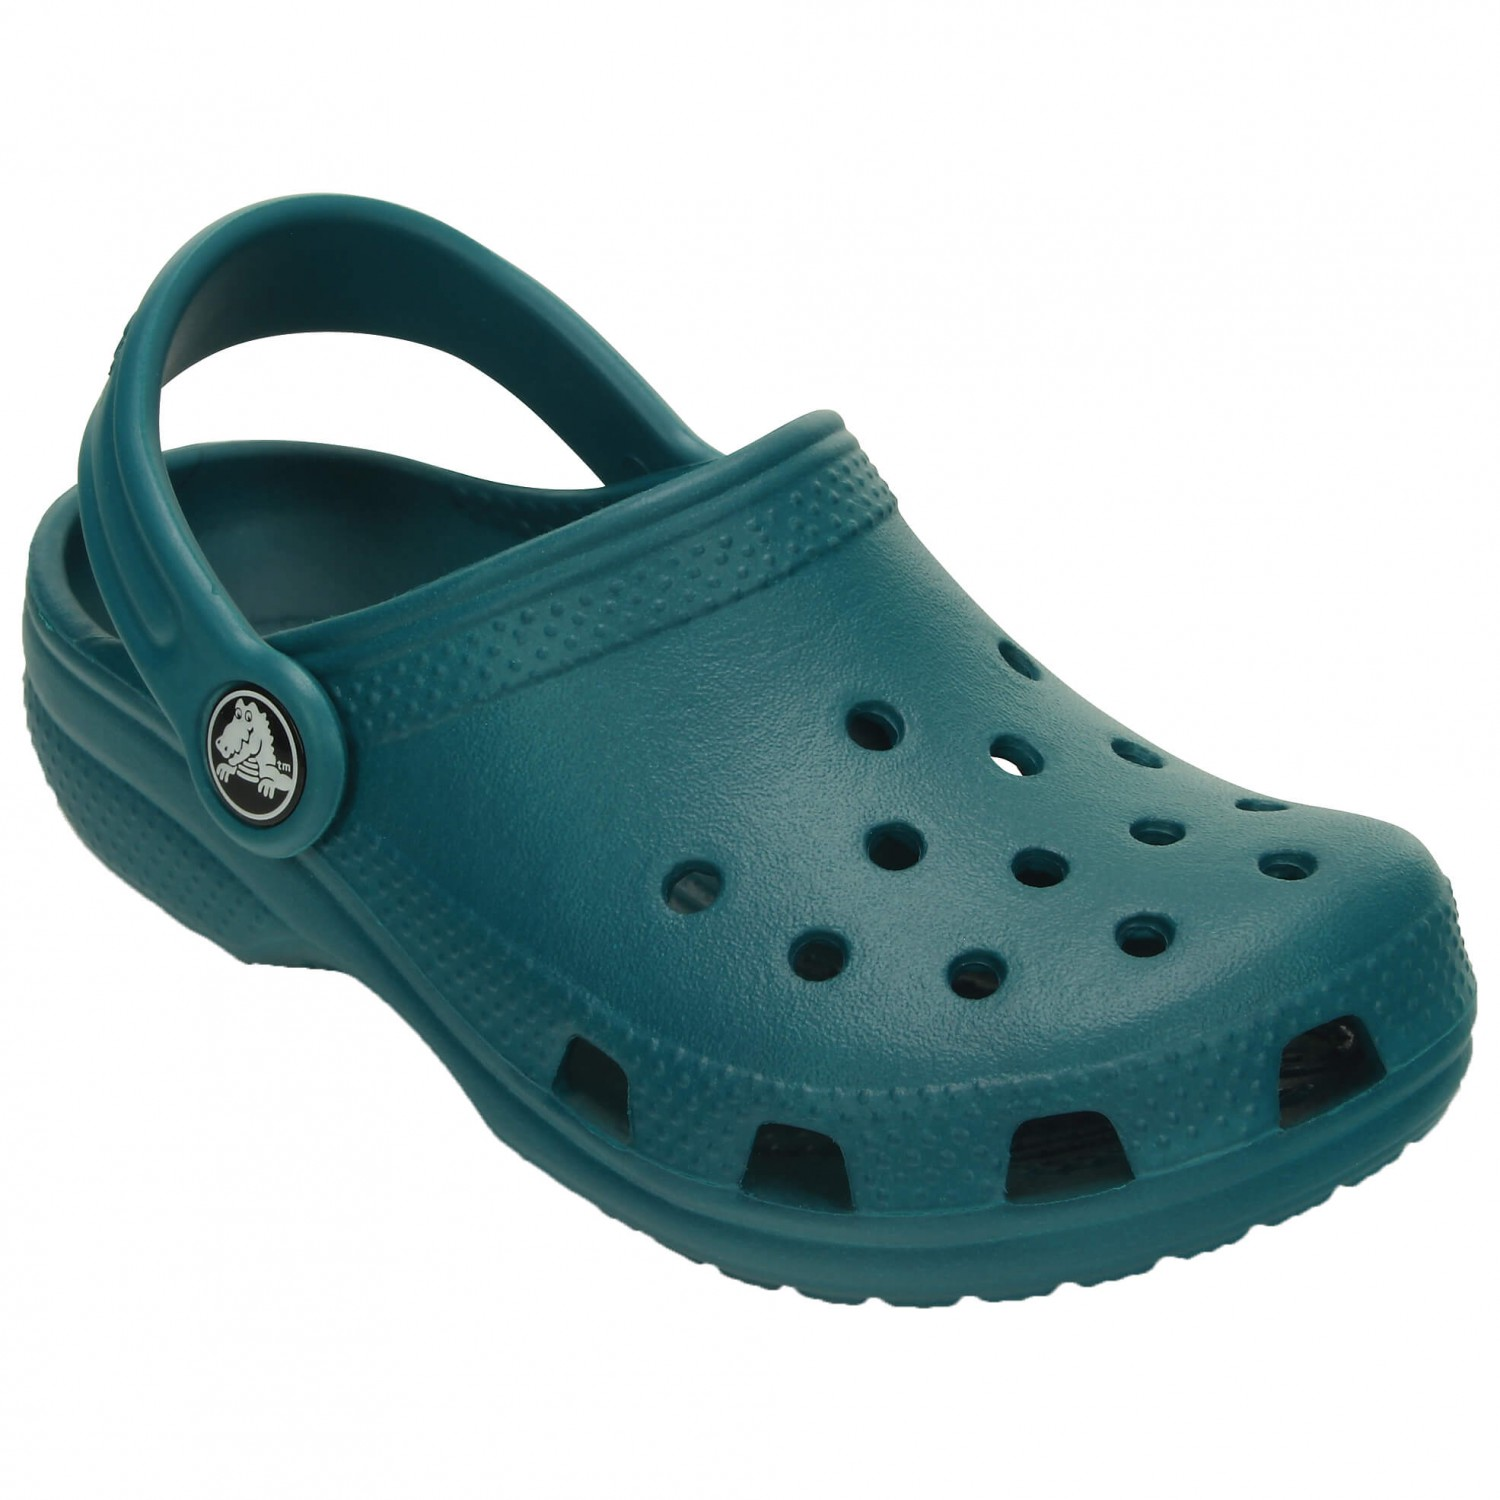 premium selection 540d2 472e1 Crocs Classic - Sandals Kids | Buy online | Alpinetrek.co.uk